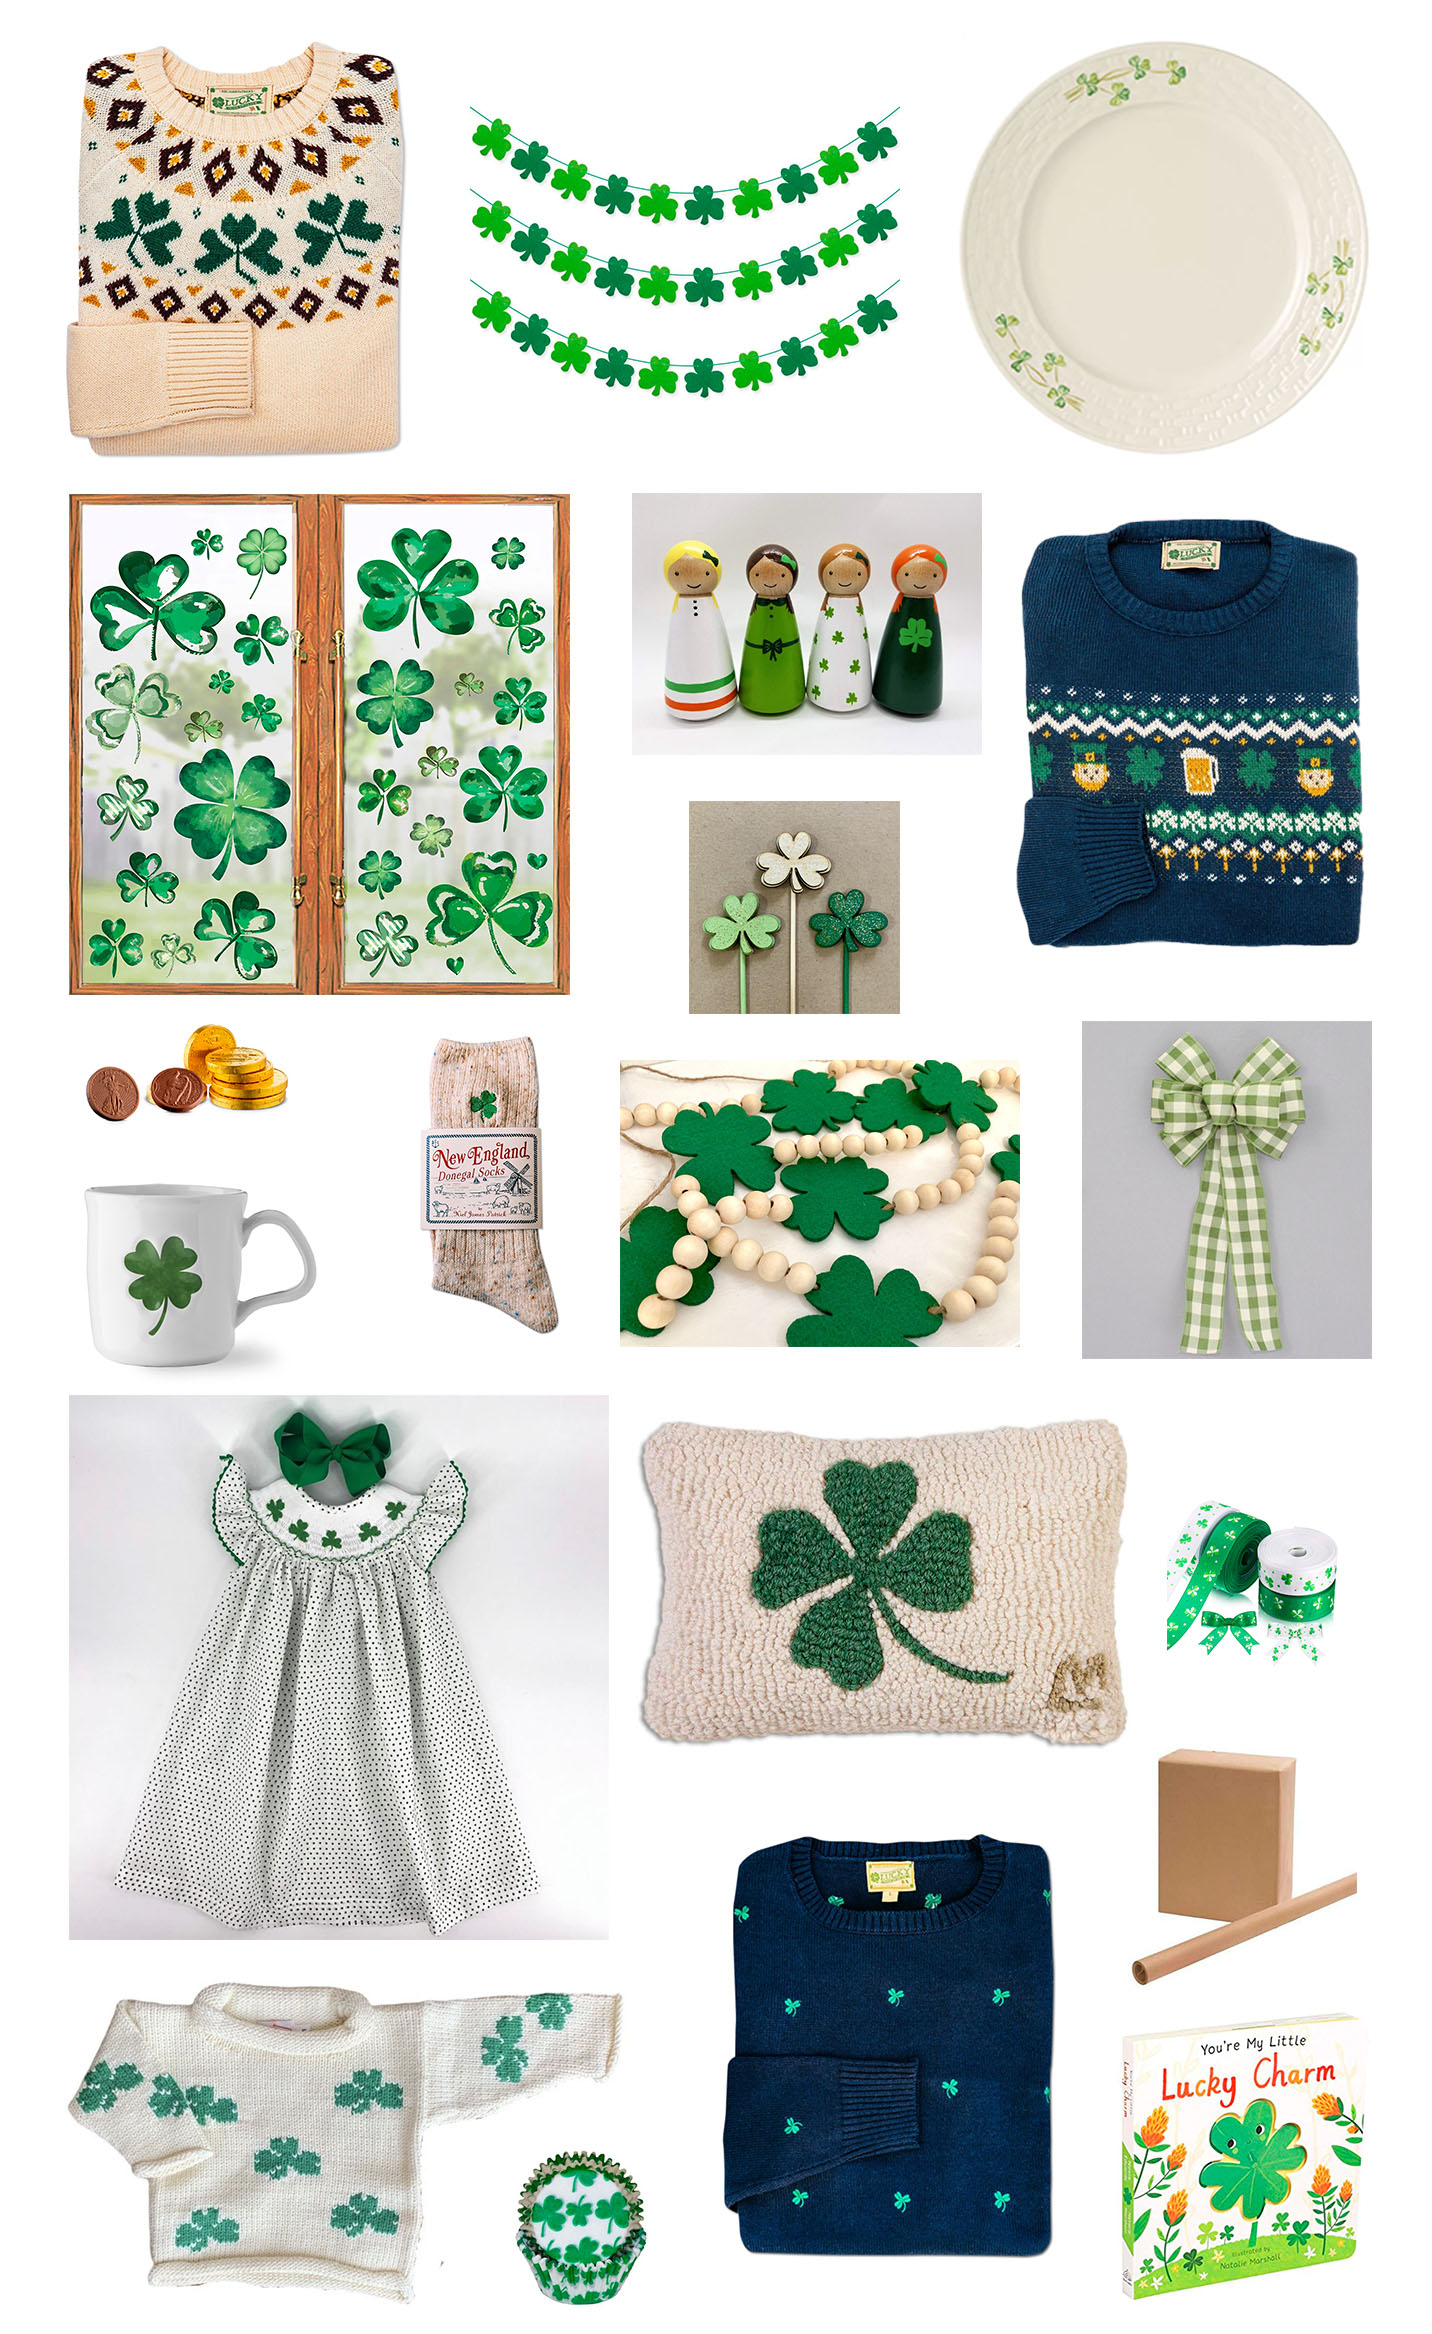 Saint Patricks Day Gifts & Decor